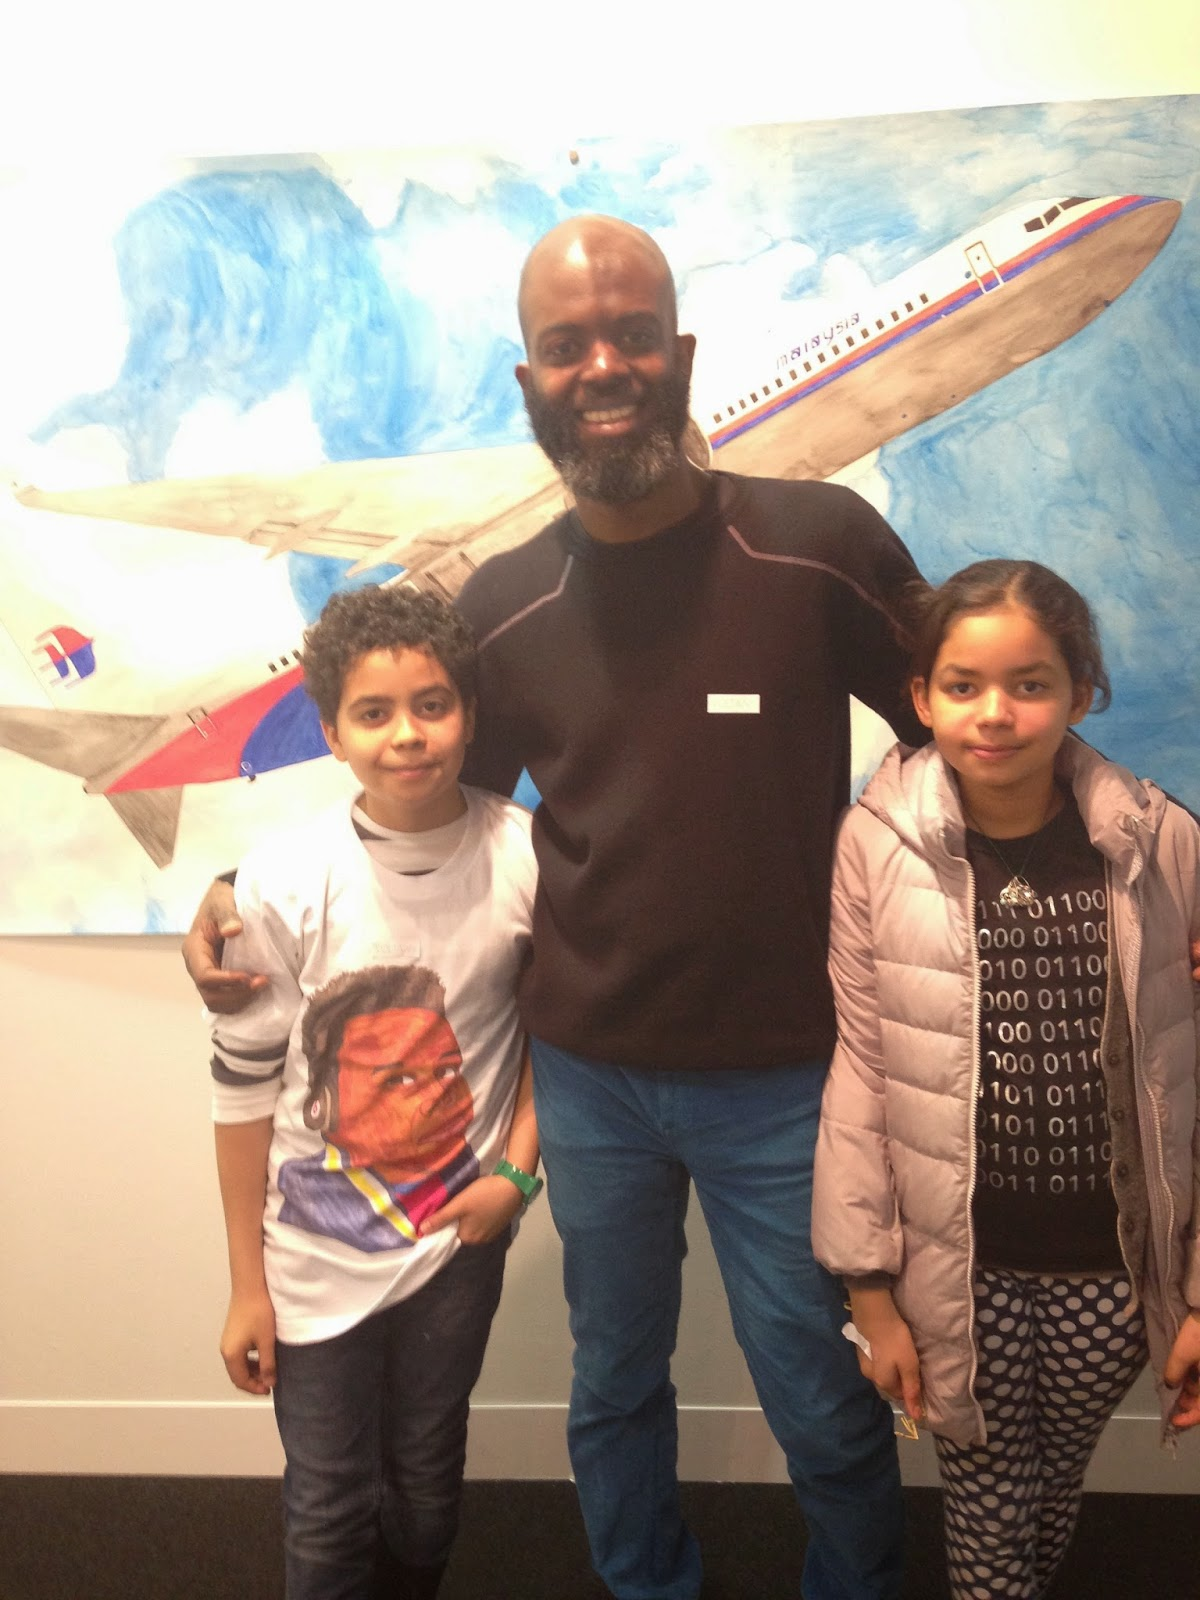 me and the kids at my Volta show with Mixed Greens Gallery